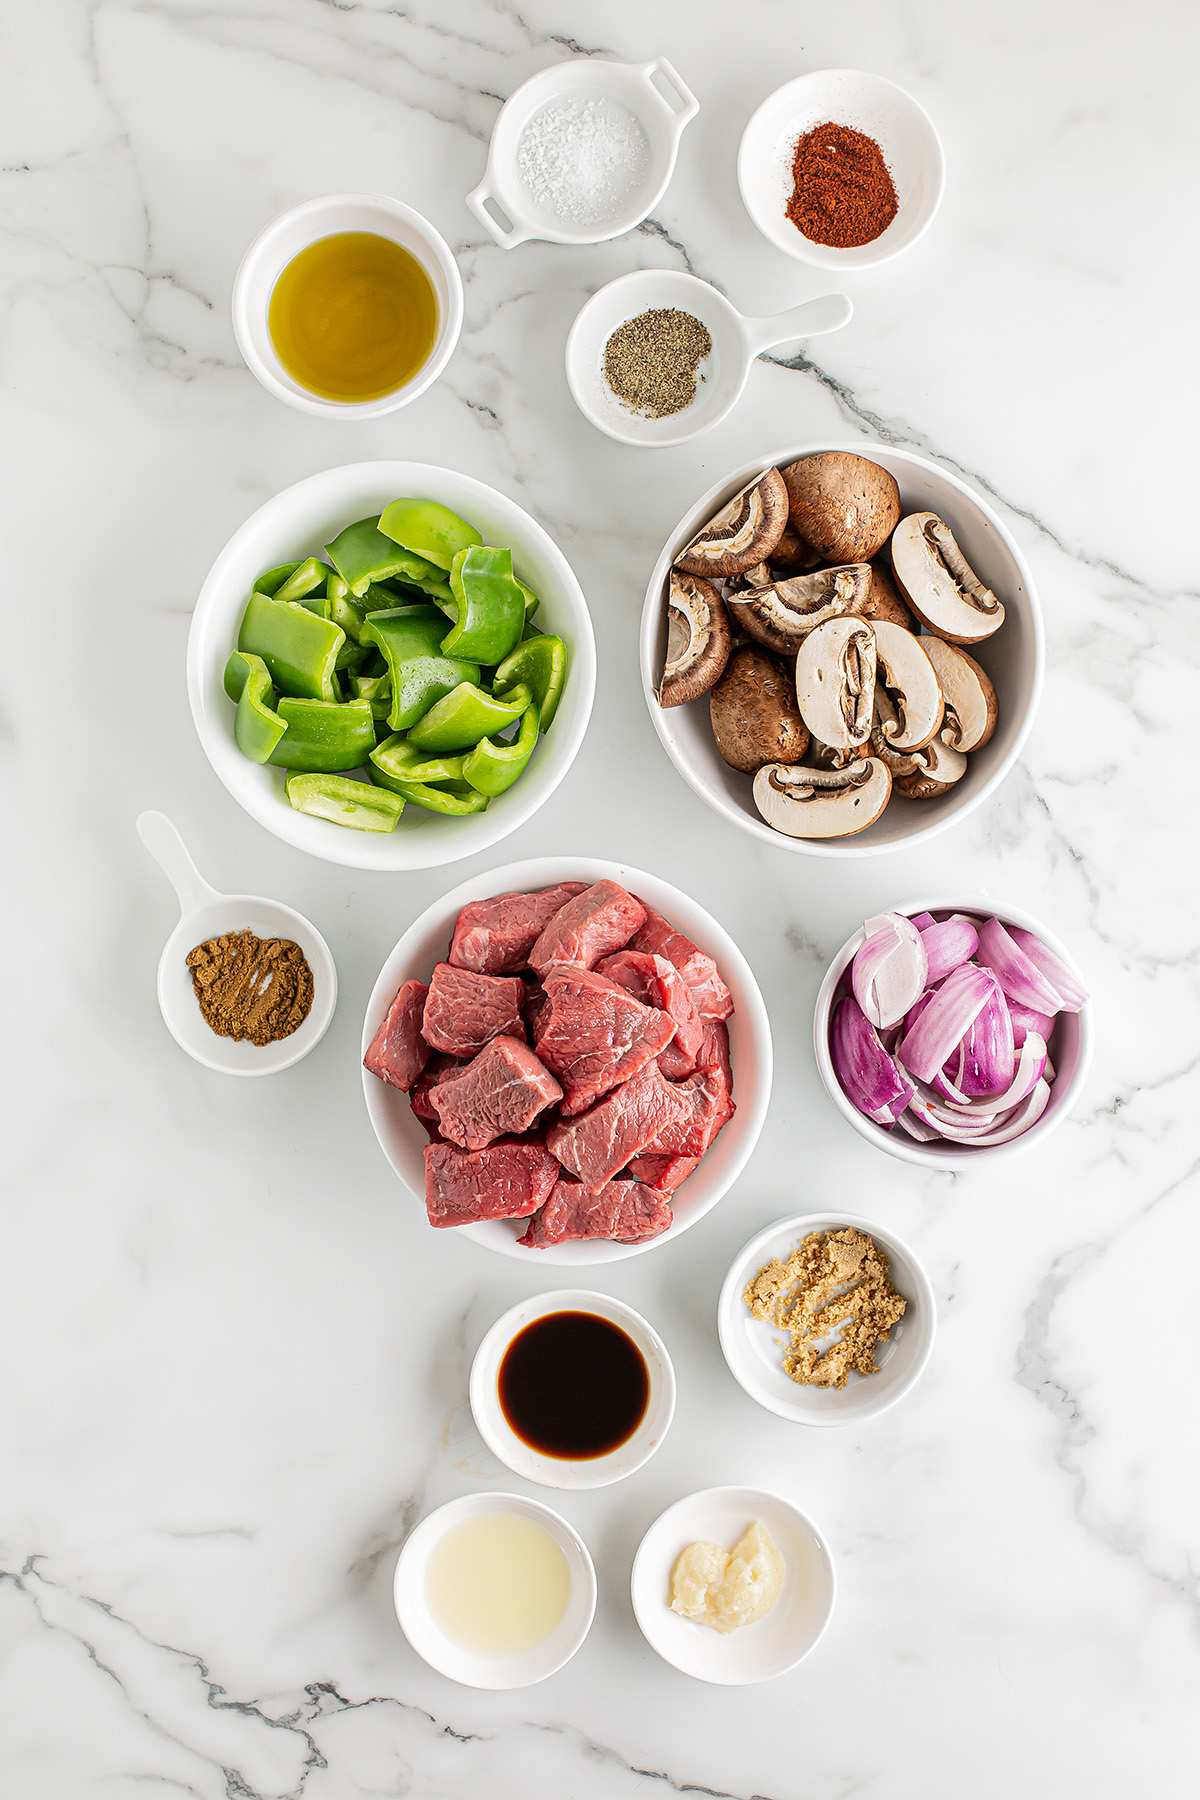 Raw ingredients for steak kabobs spread out on a counter